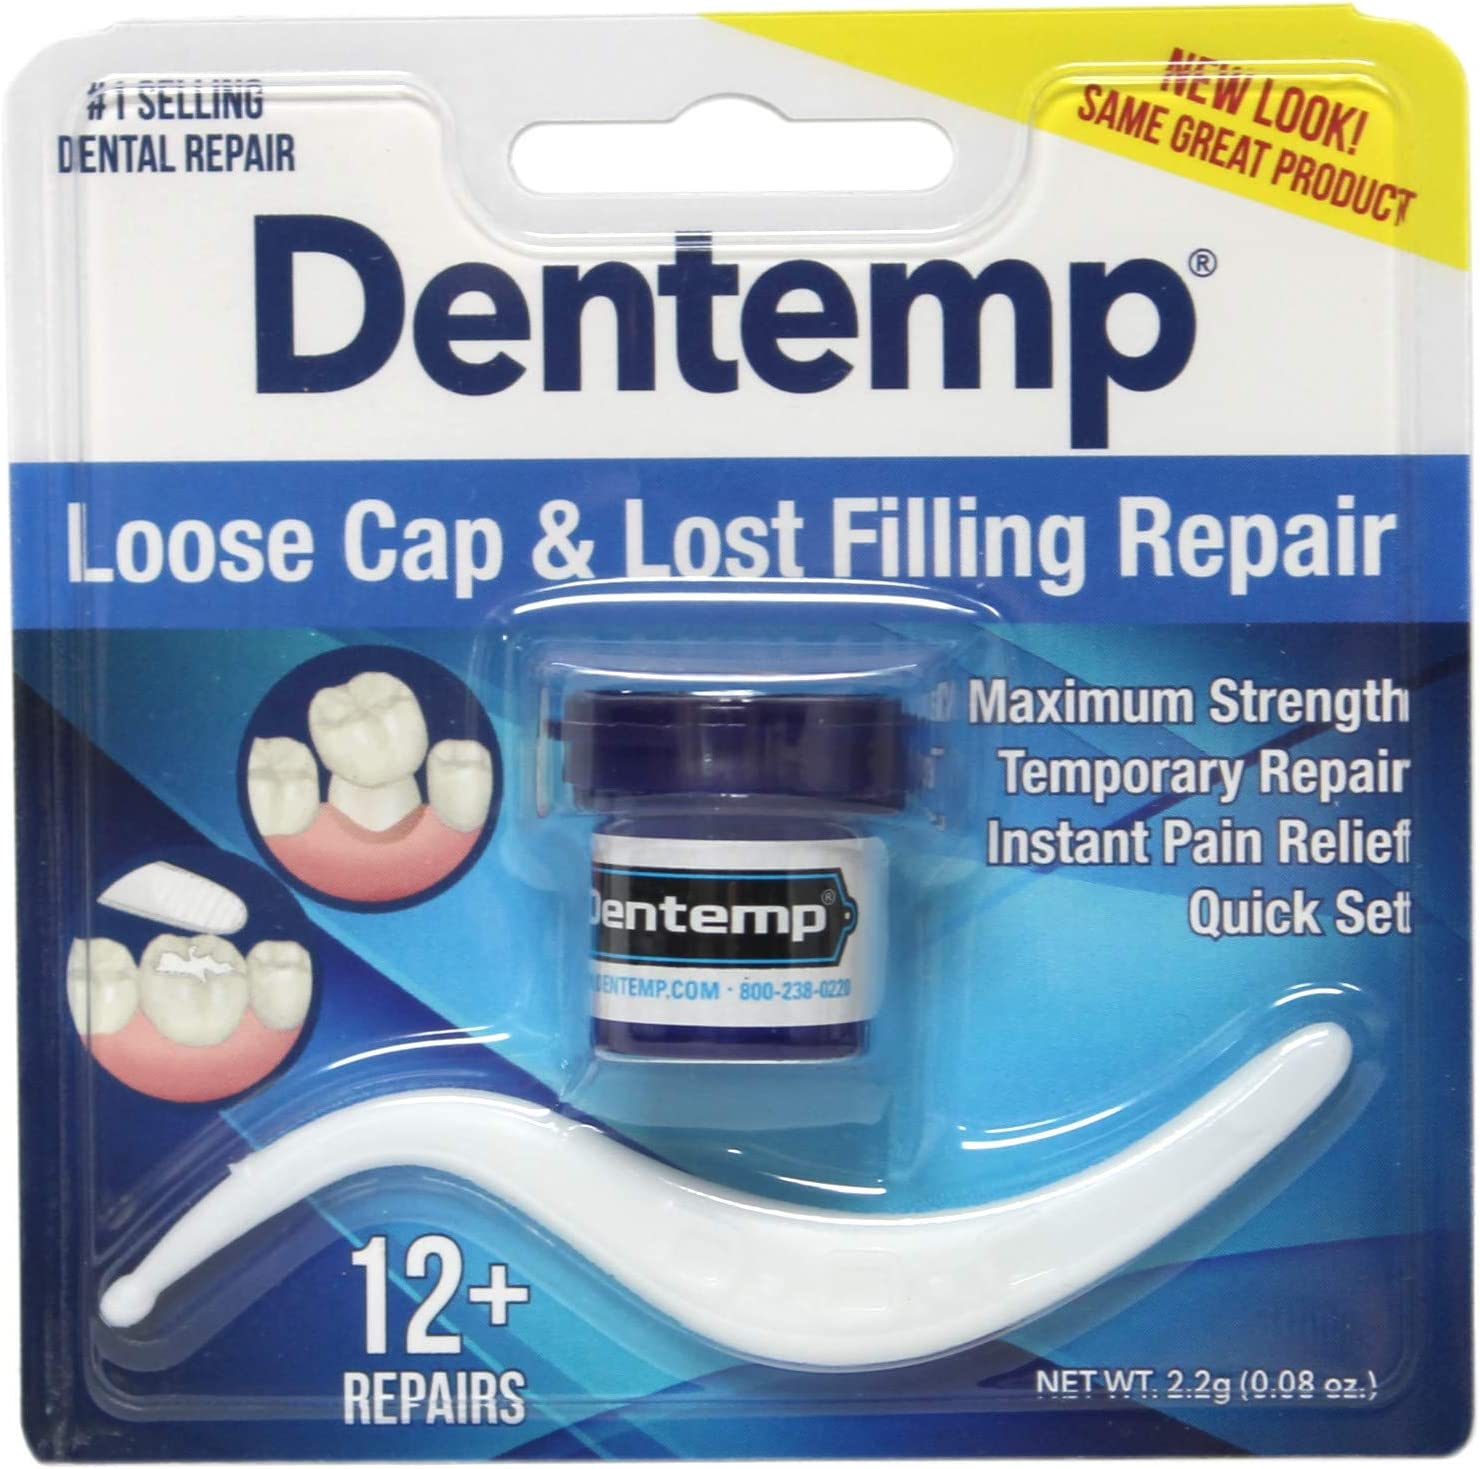 Dentemp Maximum Strength Lost Fillings and Loose Caps Repair, Instant Pain Relief, Dentist Used and Recommended, 12 uses, 0.07 Ounce